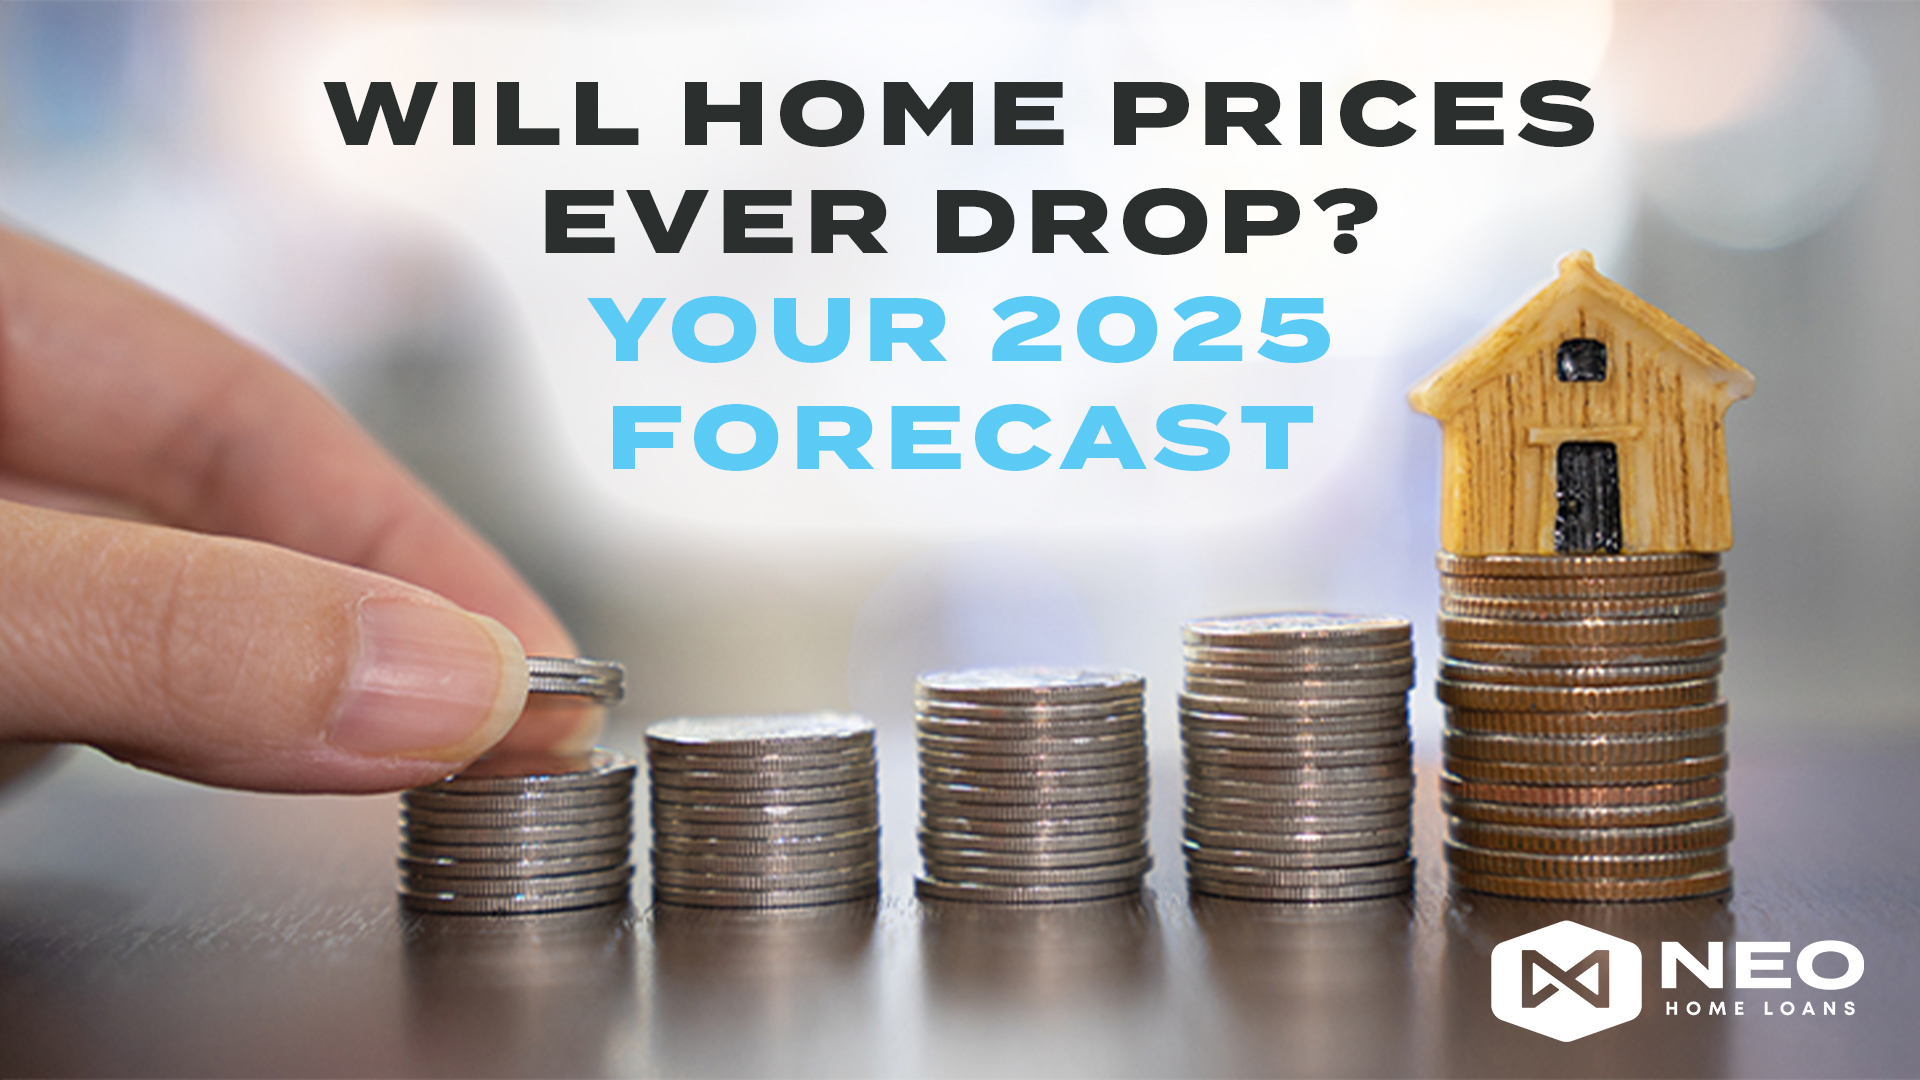 Will Home Prices Ever Drop? Your 2025 Forecast